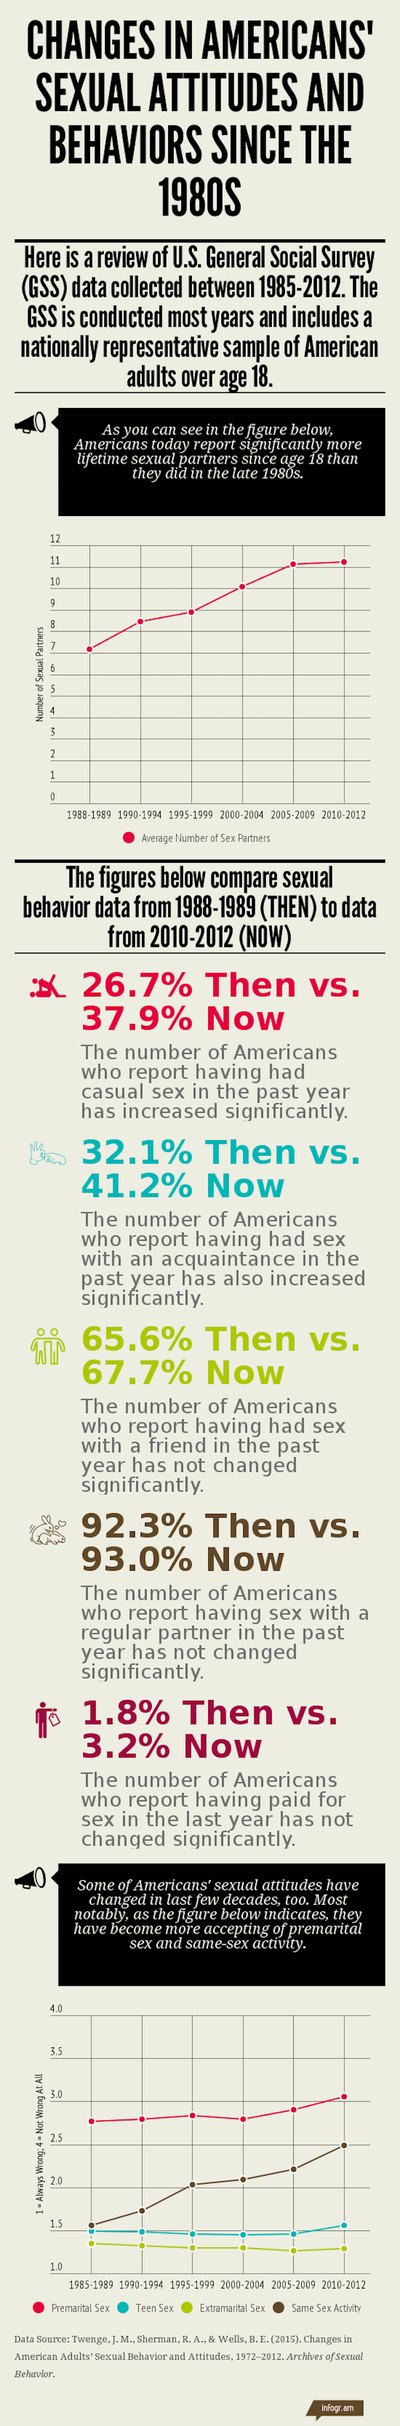 Casual sex and sexual partners are on the rise.